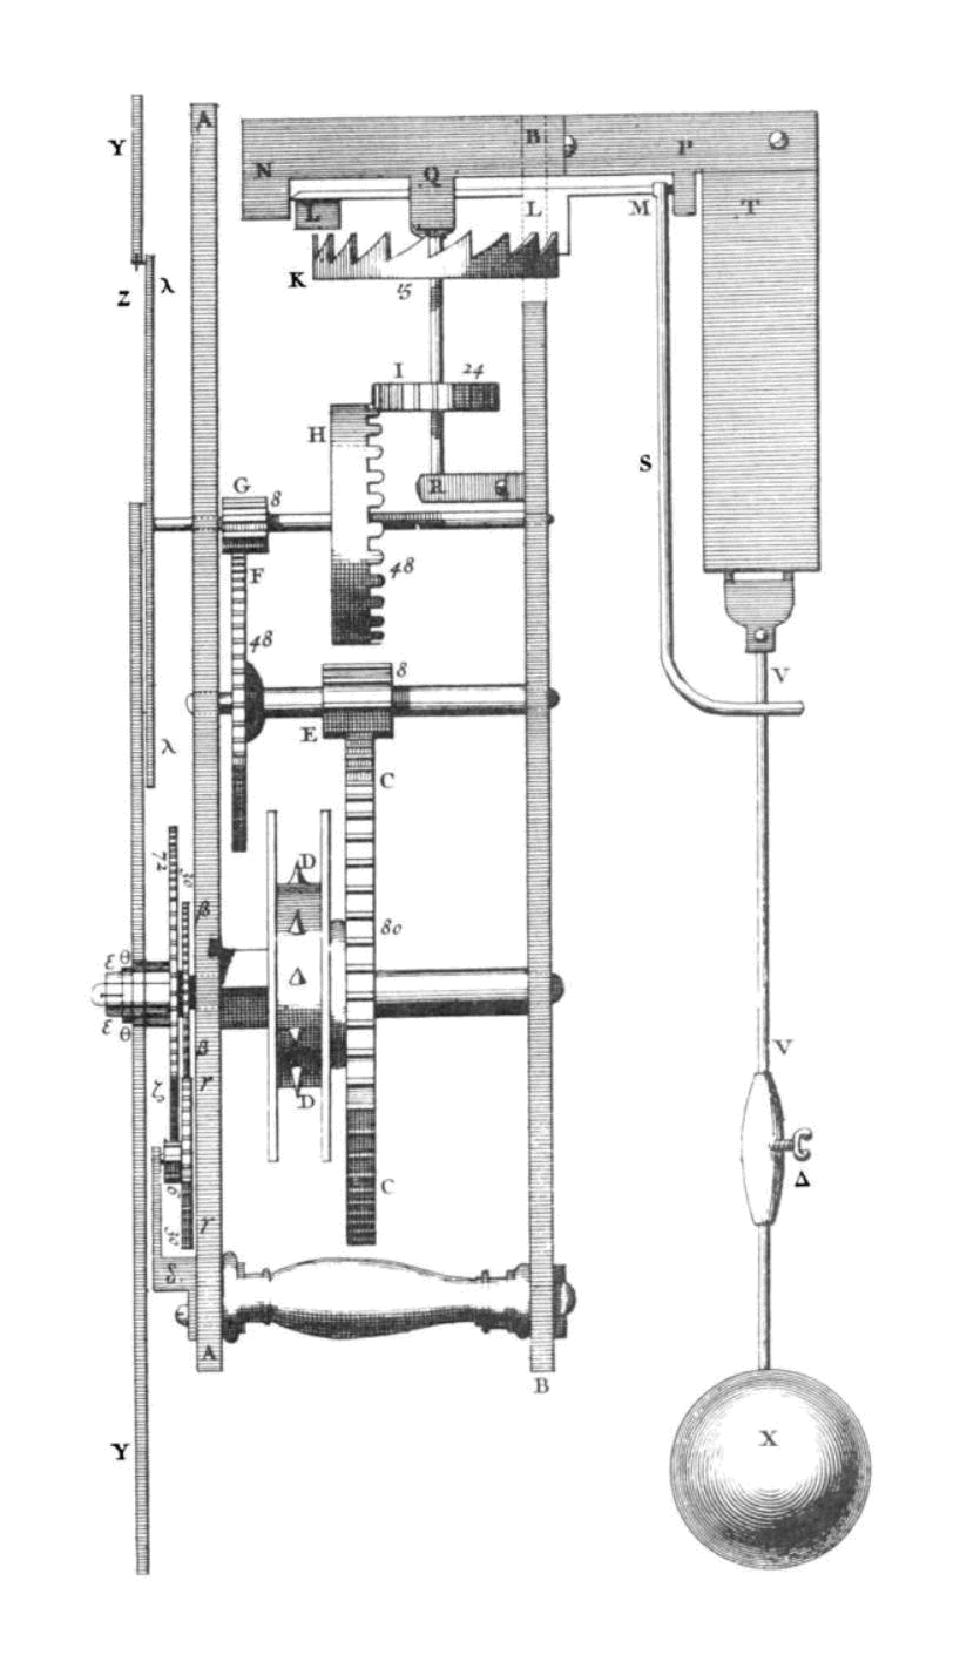 The design of an early pendulum clock, built in 1673, by Christiaan Huygens